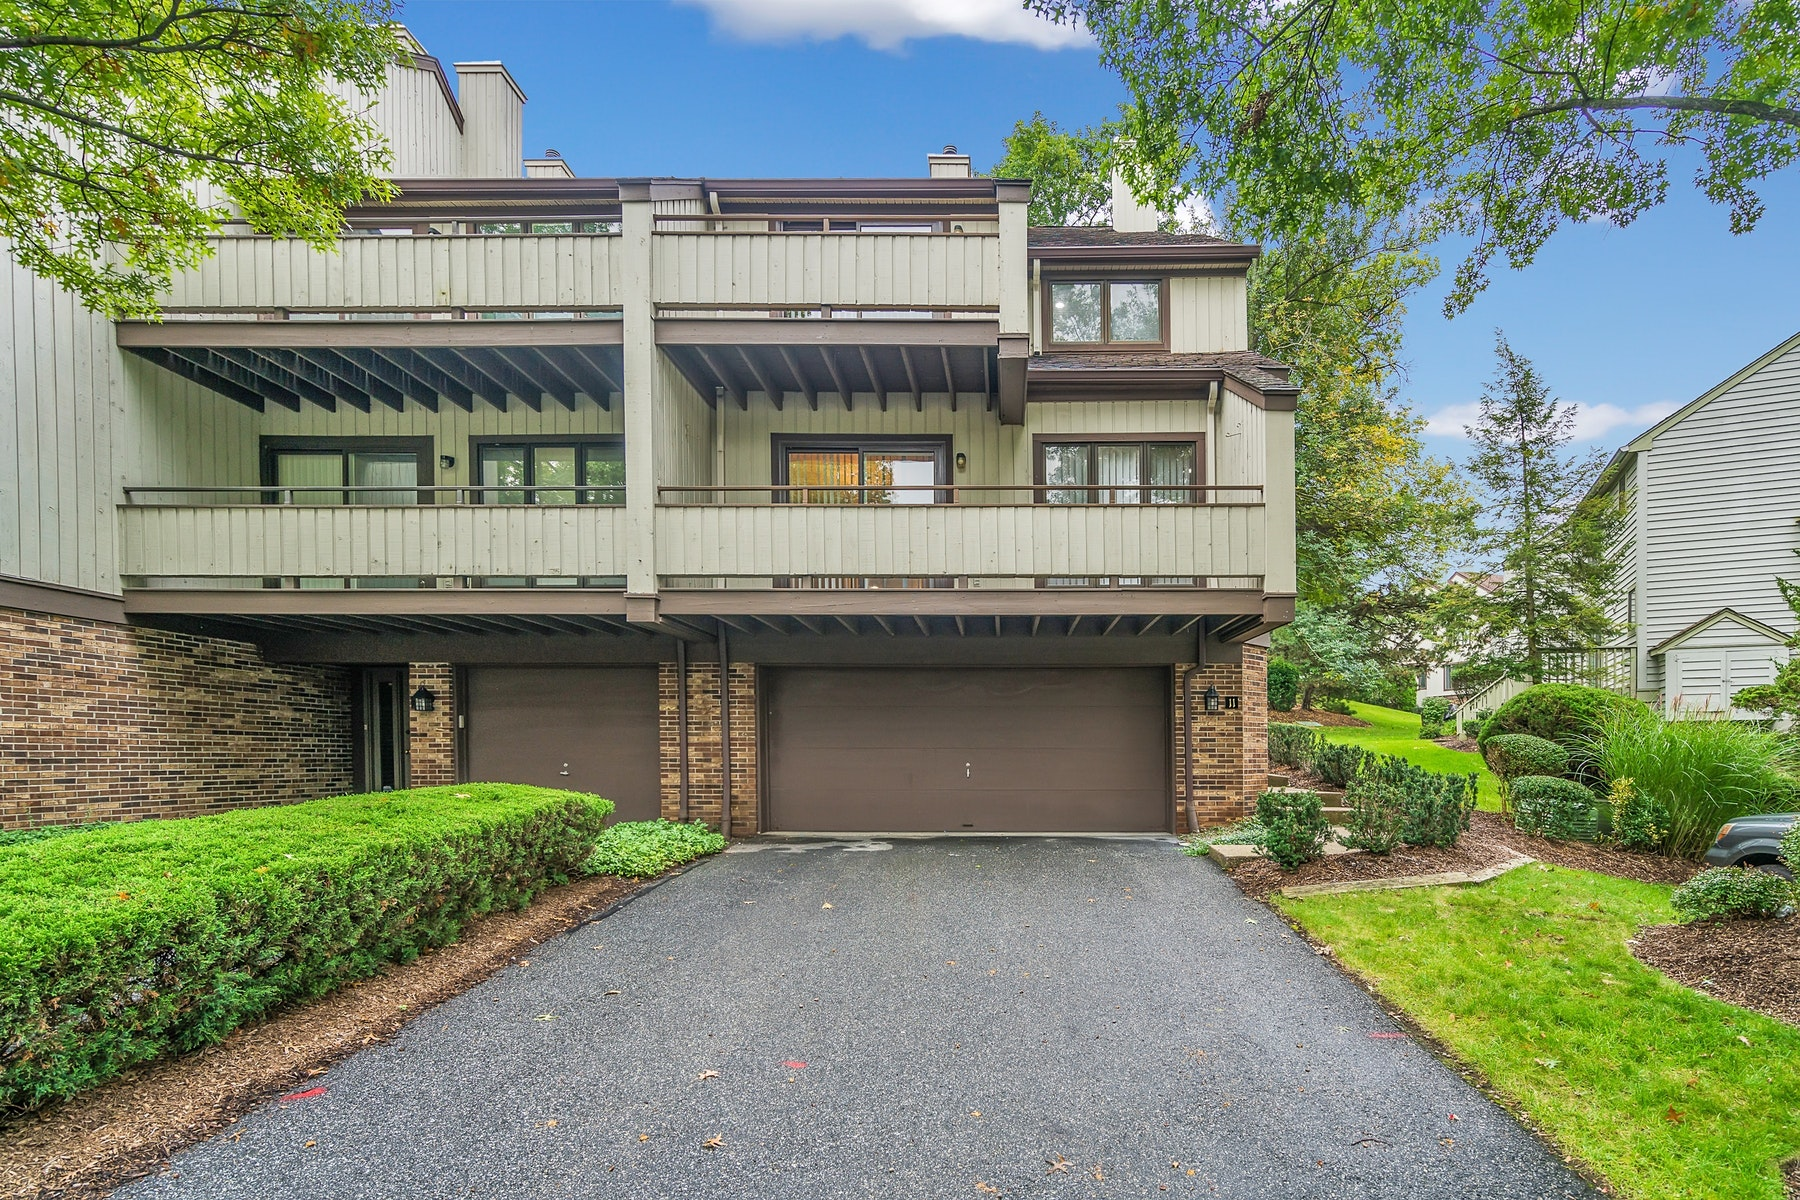 Condominium for Sale at Beautiful Townhouse 11 Meadowview Ct, Leonia, New Jersey 07605 United States